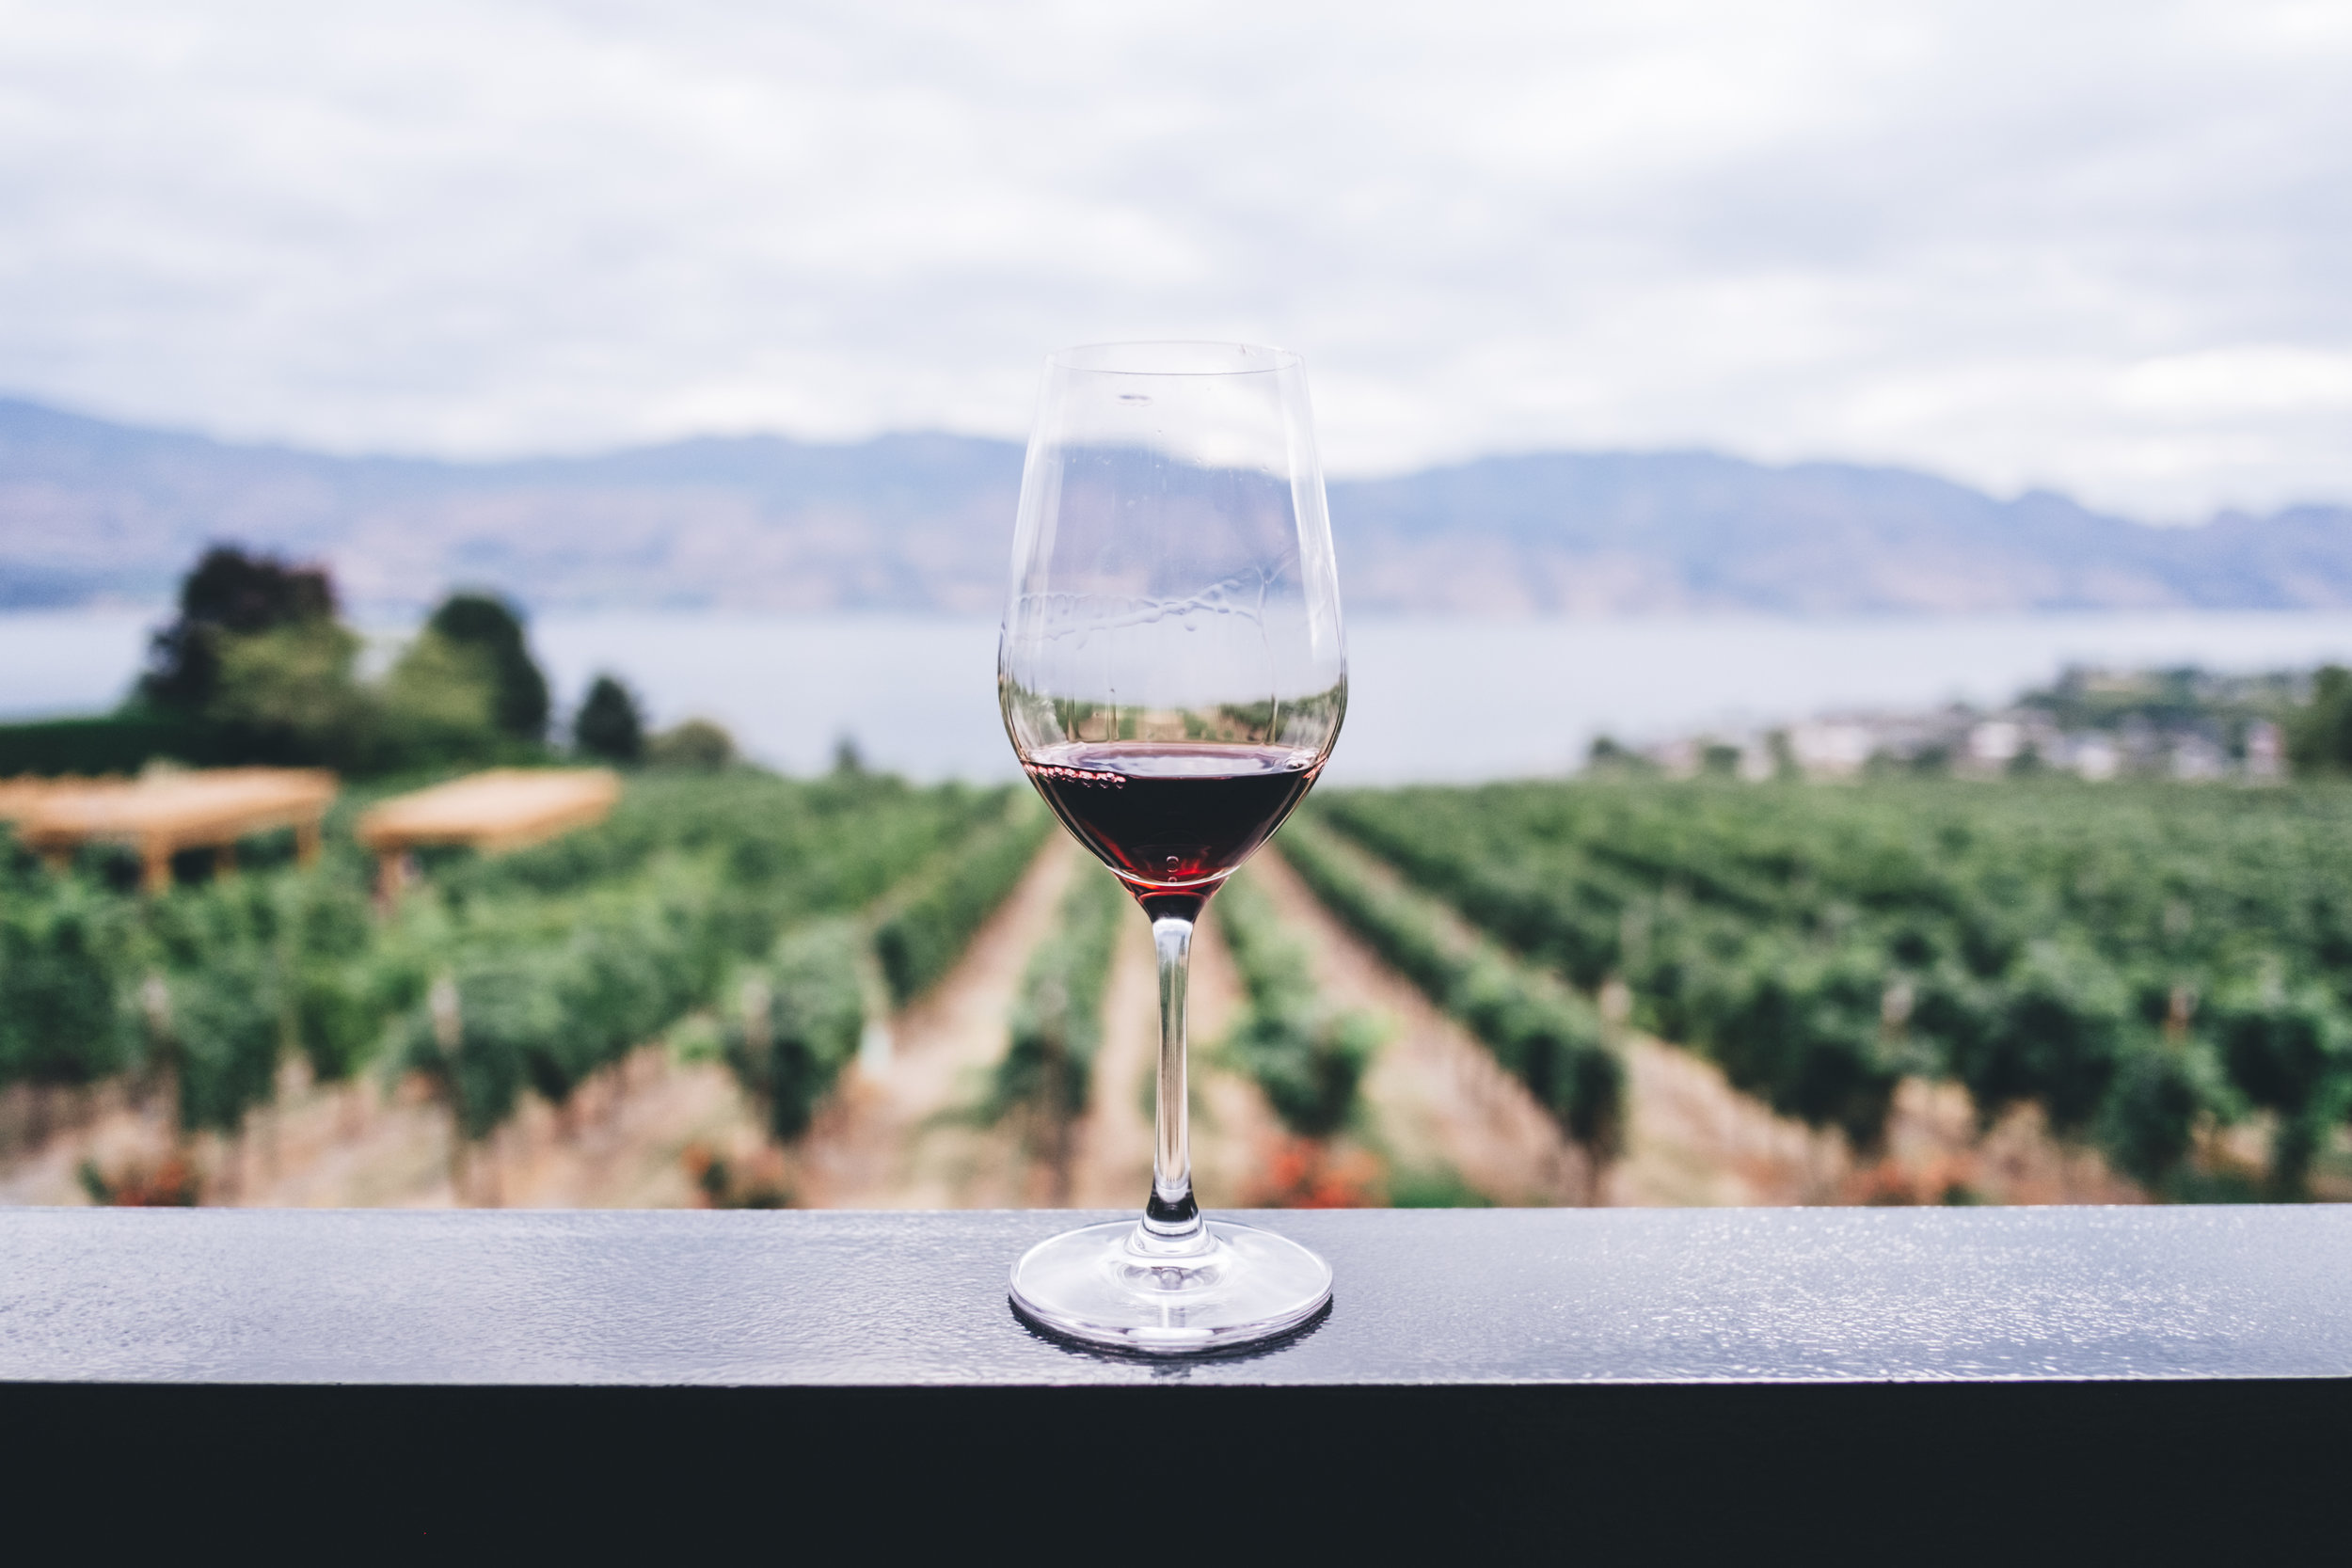 Saturday, September 28 | Cadillac Class Series 2:15 PM Old World Vs. New World: The Rise of Tempranillo    The grape that grows so well in Spain also does well in other parts of the world too, including Texas. Taste how the Texas varietal stands up against Old World favorites.